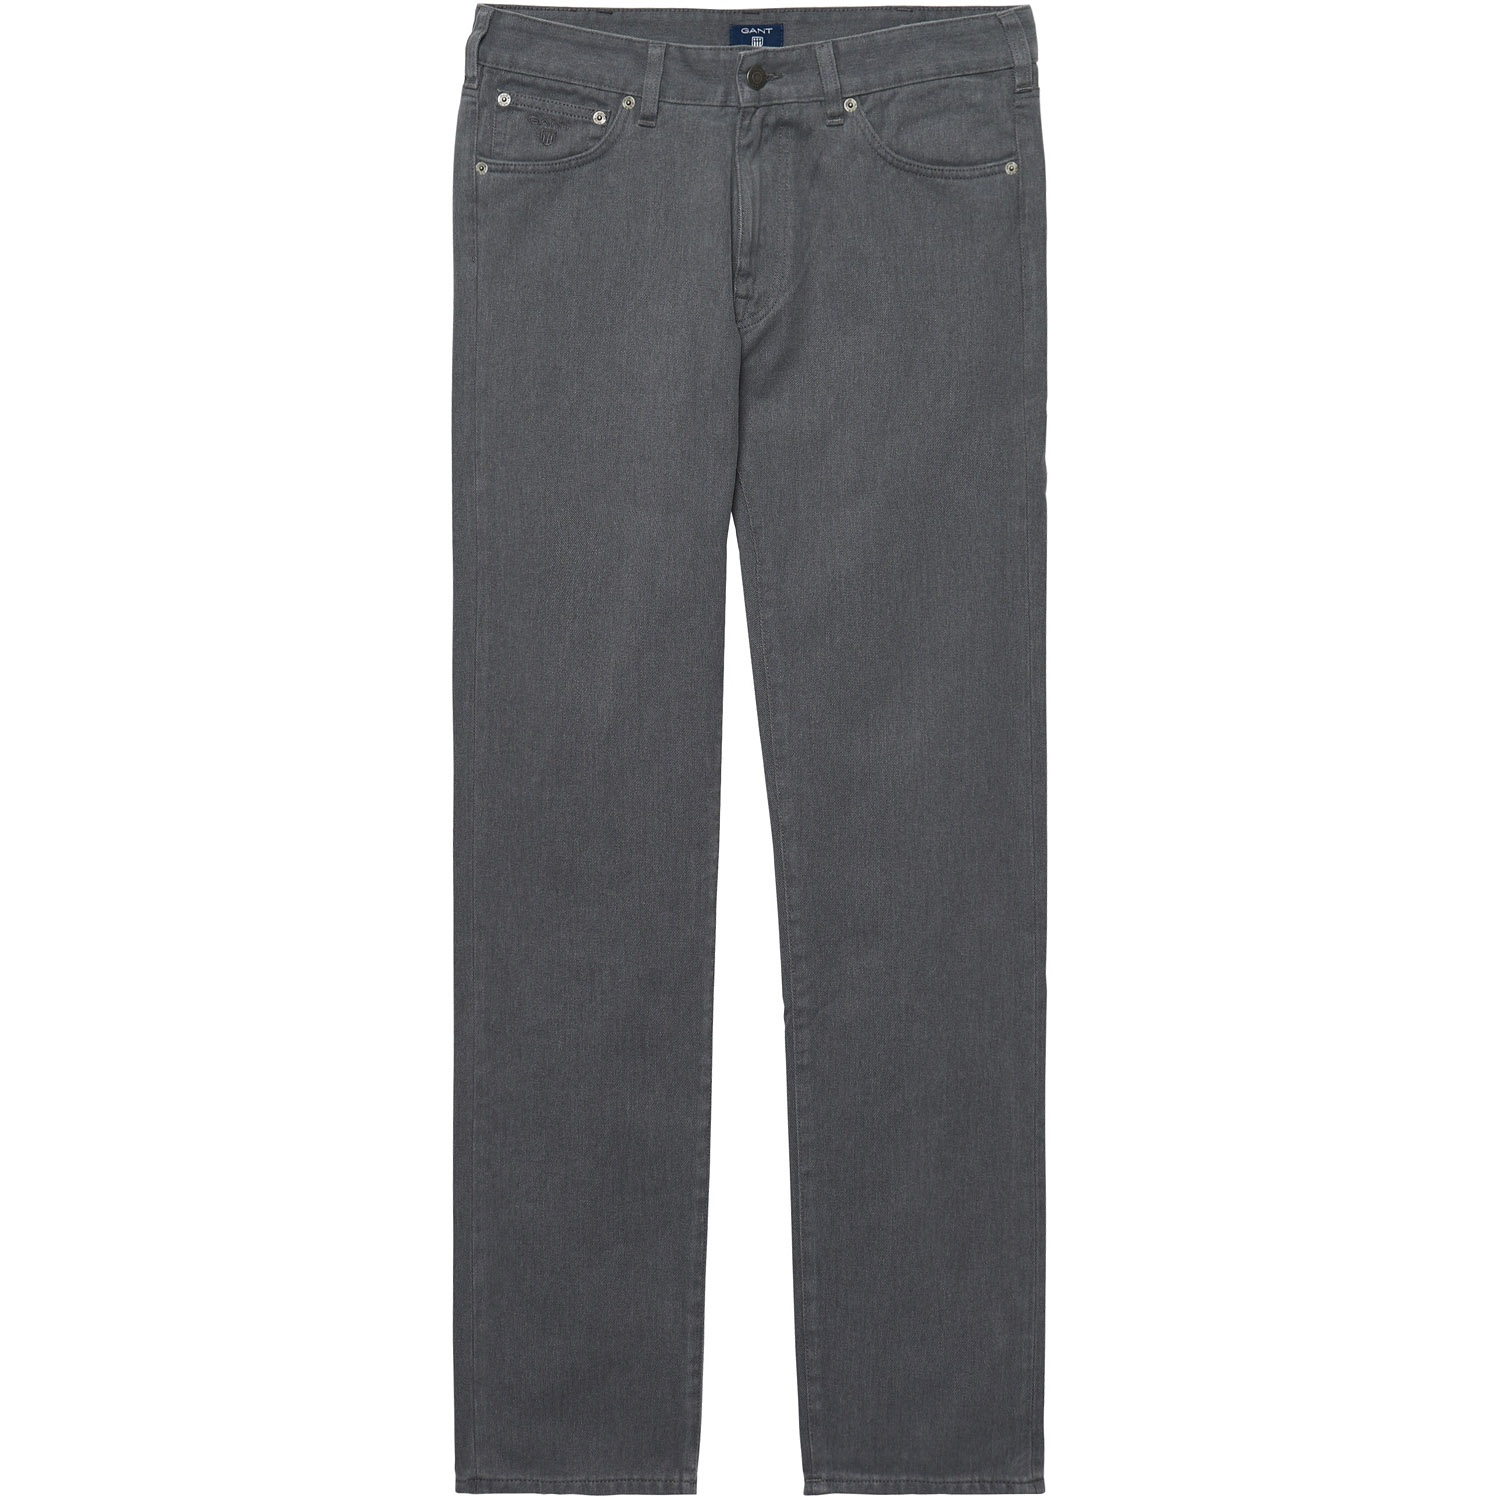 GANT Graphite Melange Regular Fit Twill Jeans